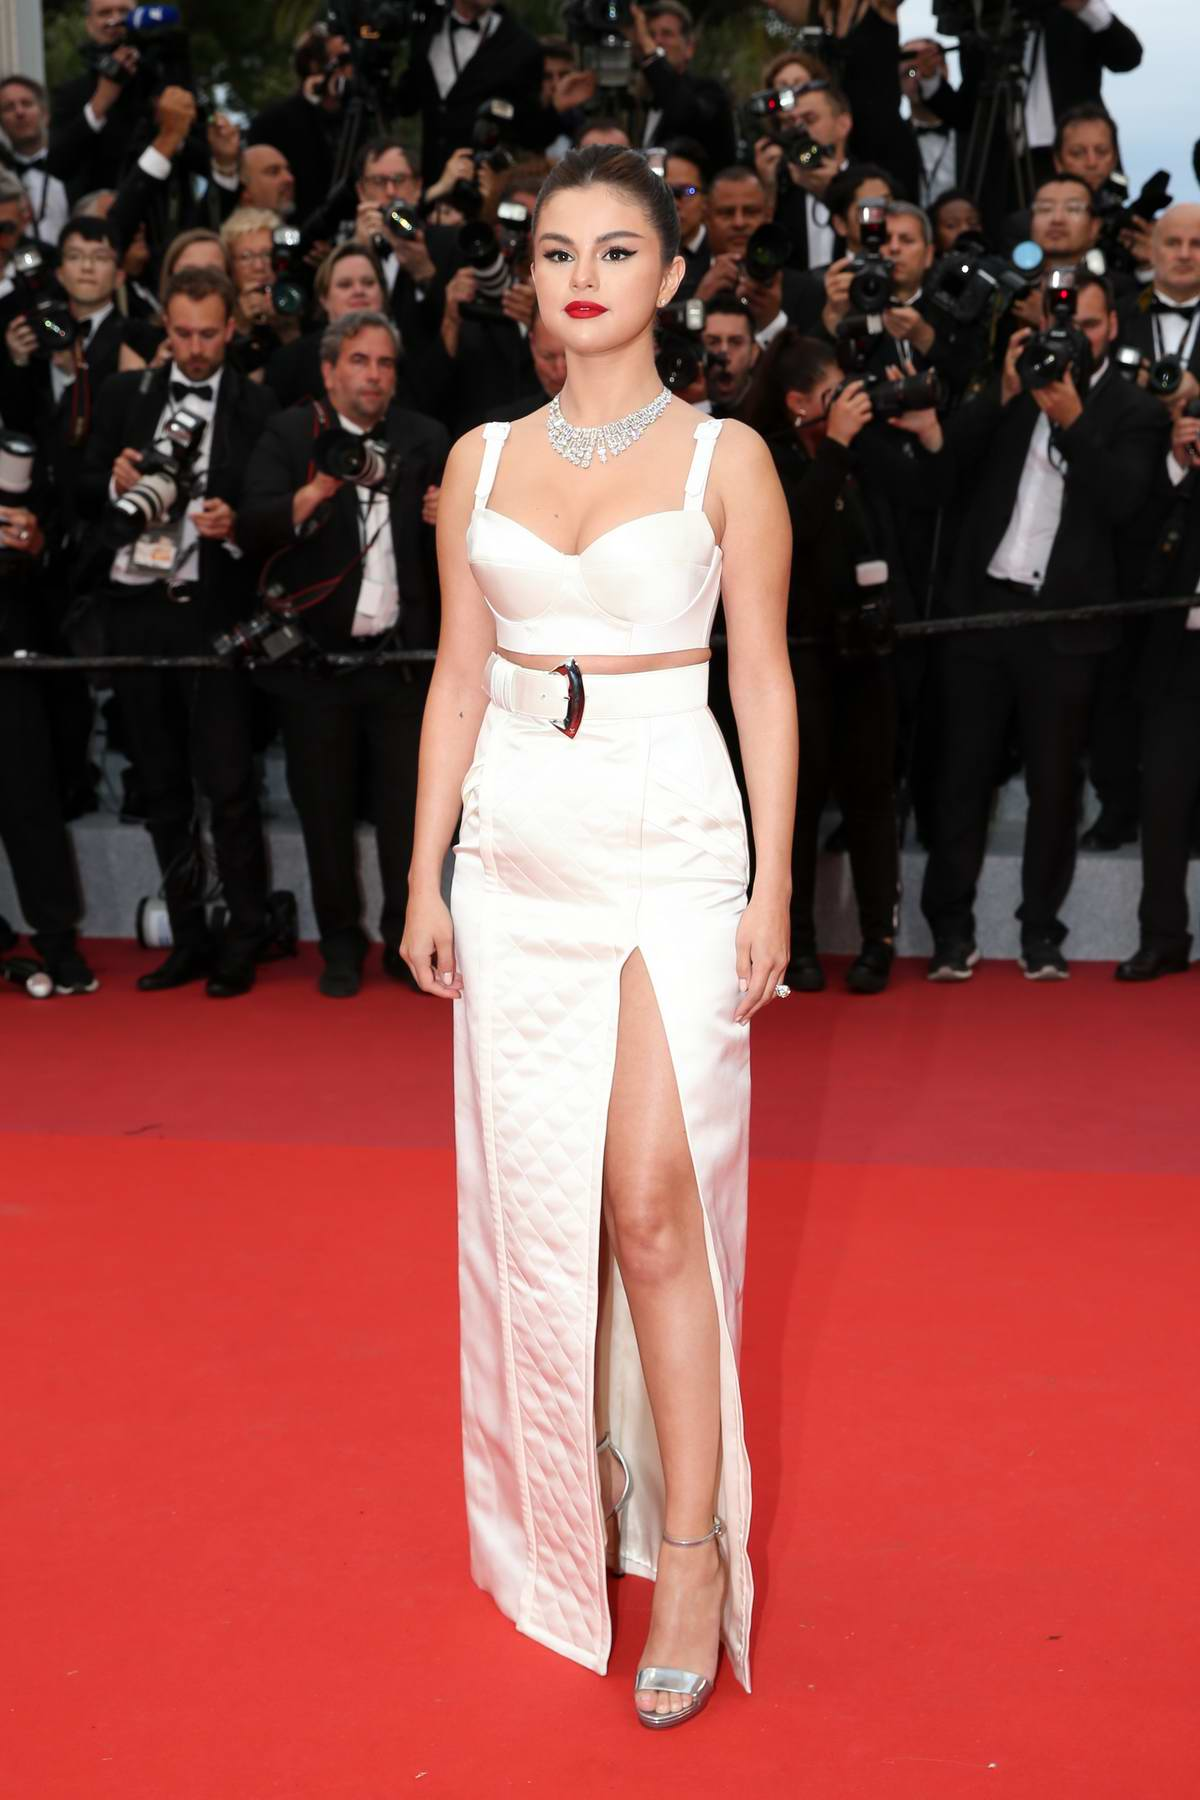 Selena Gomez attends 'The Dead Don't Die' Premiere during The 72nd annual Cannes Film Festival in Cannes, France